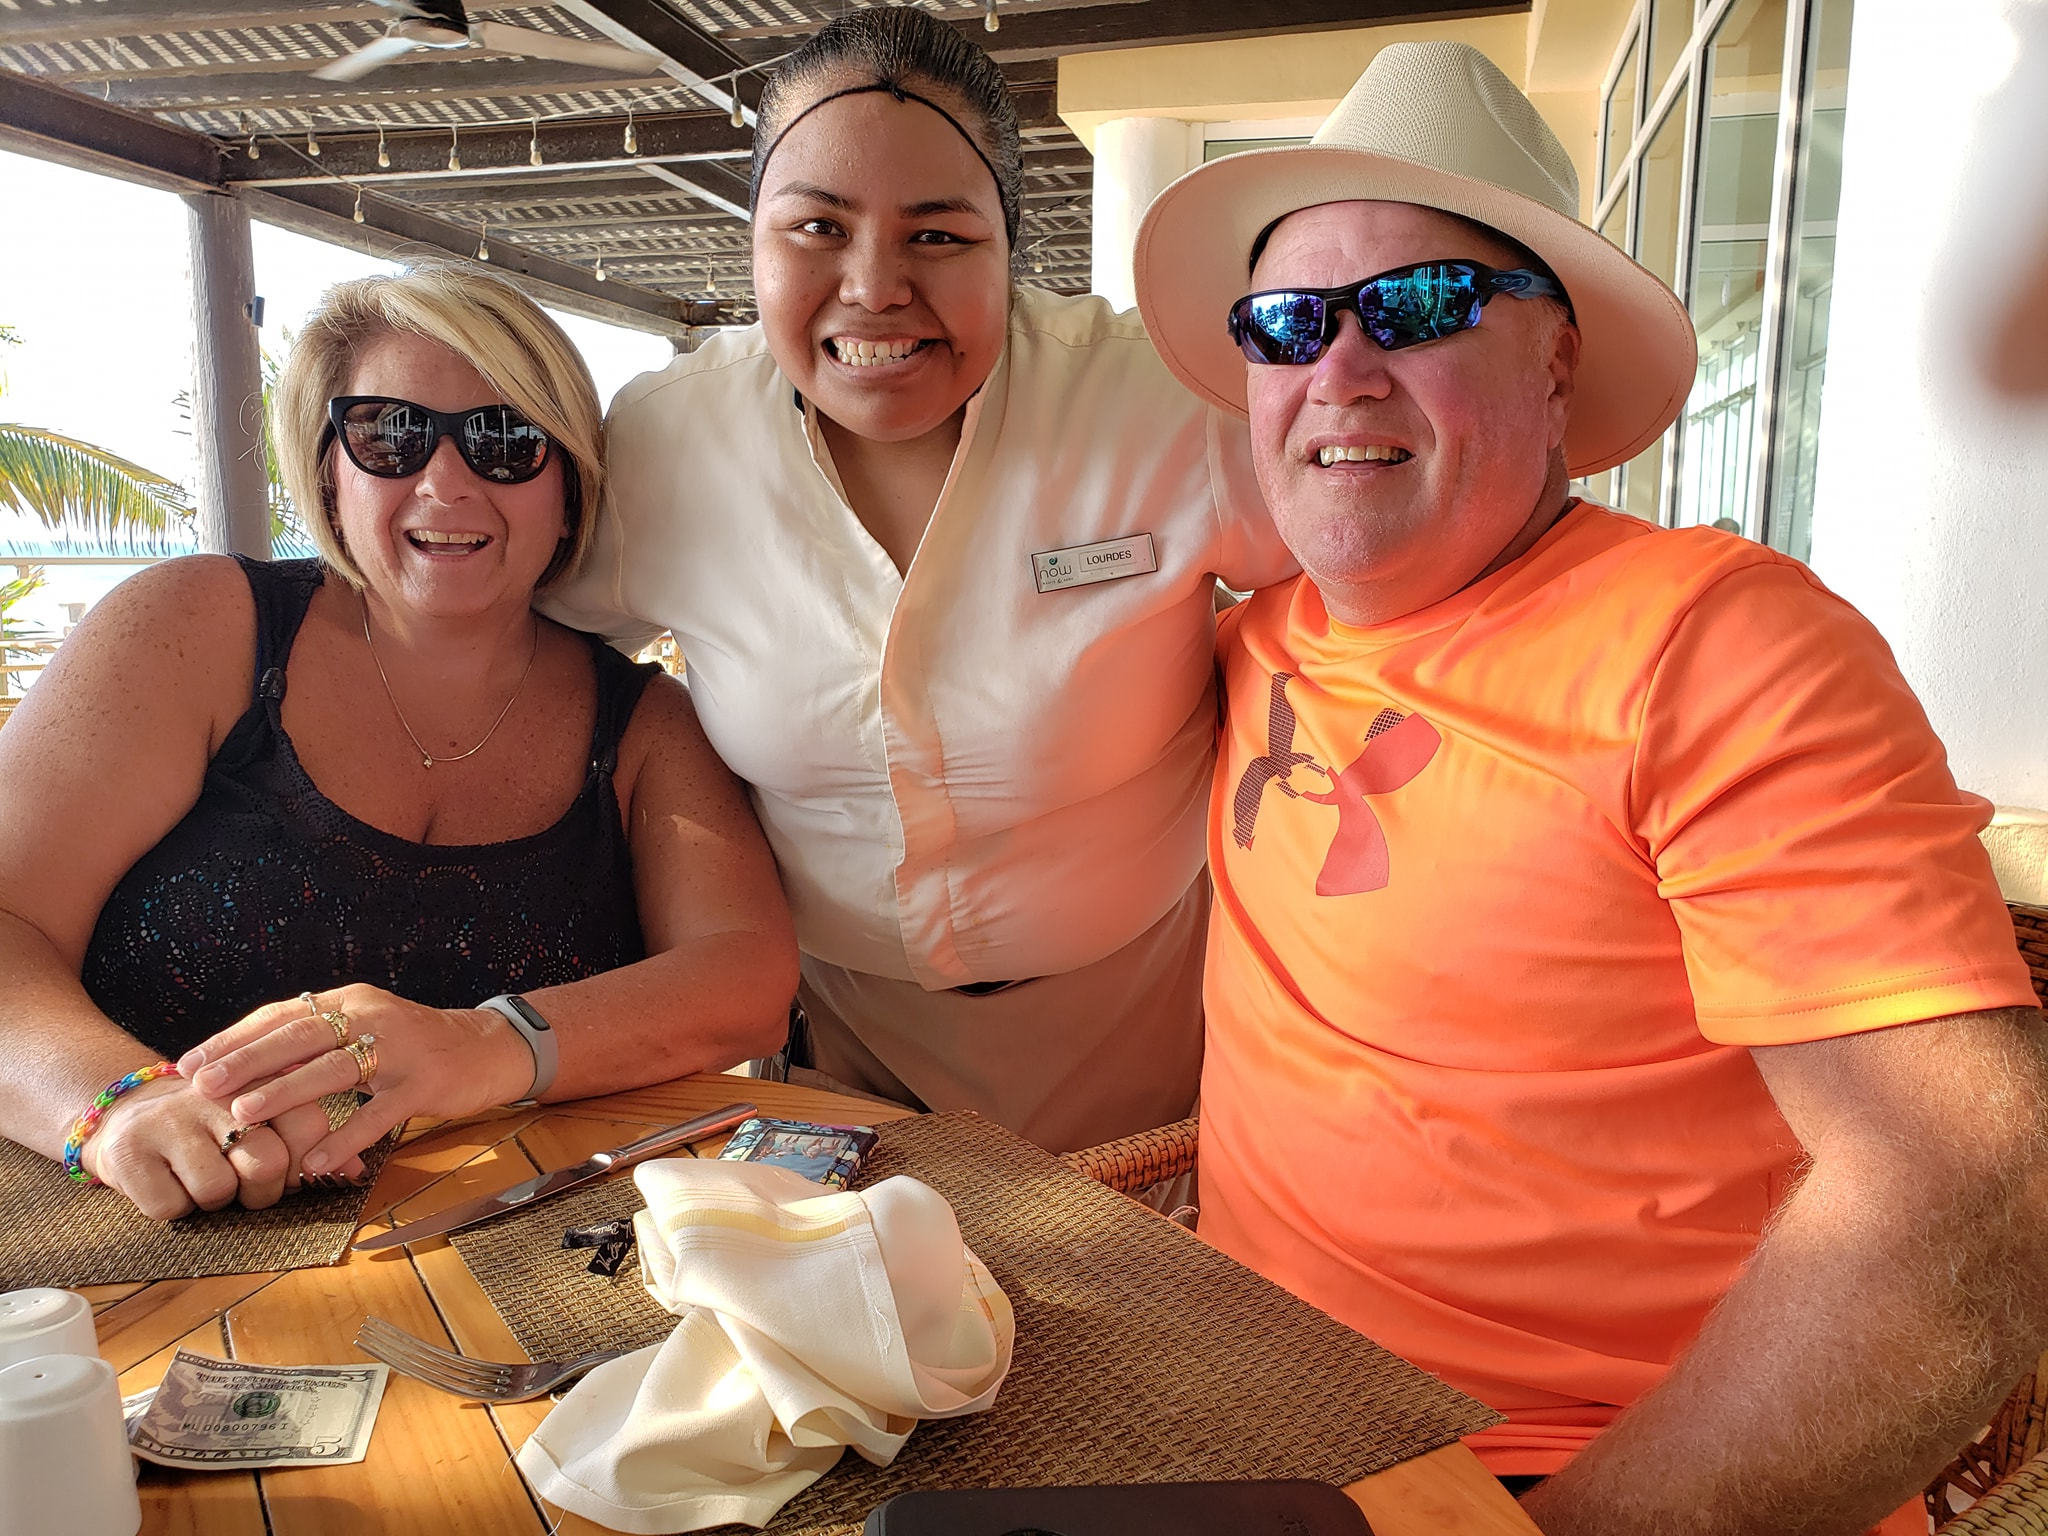 Just returned from a great trip to Cancun/Riviera Maya at the NOW JADE. It was b…